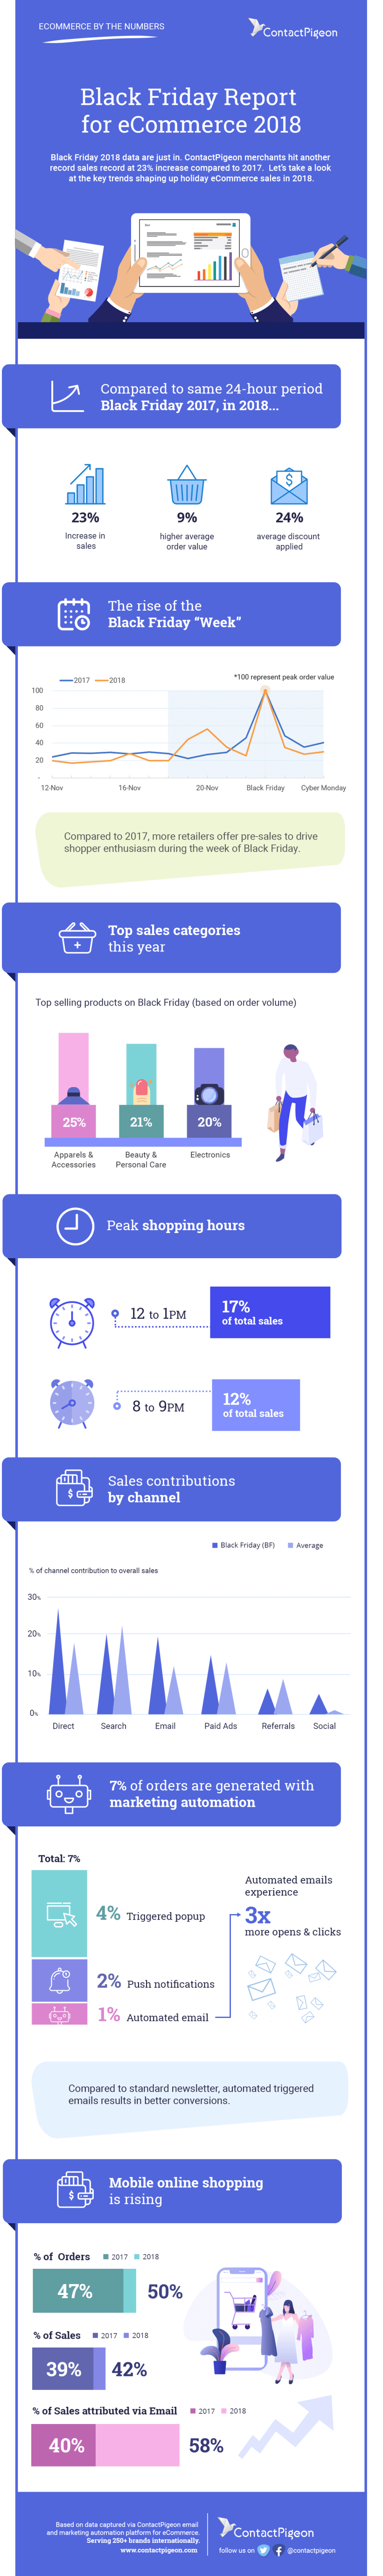 Black Friday Report for eCommerce 2018